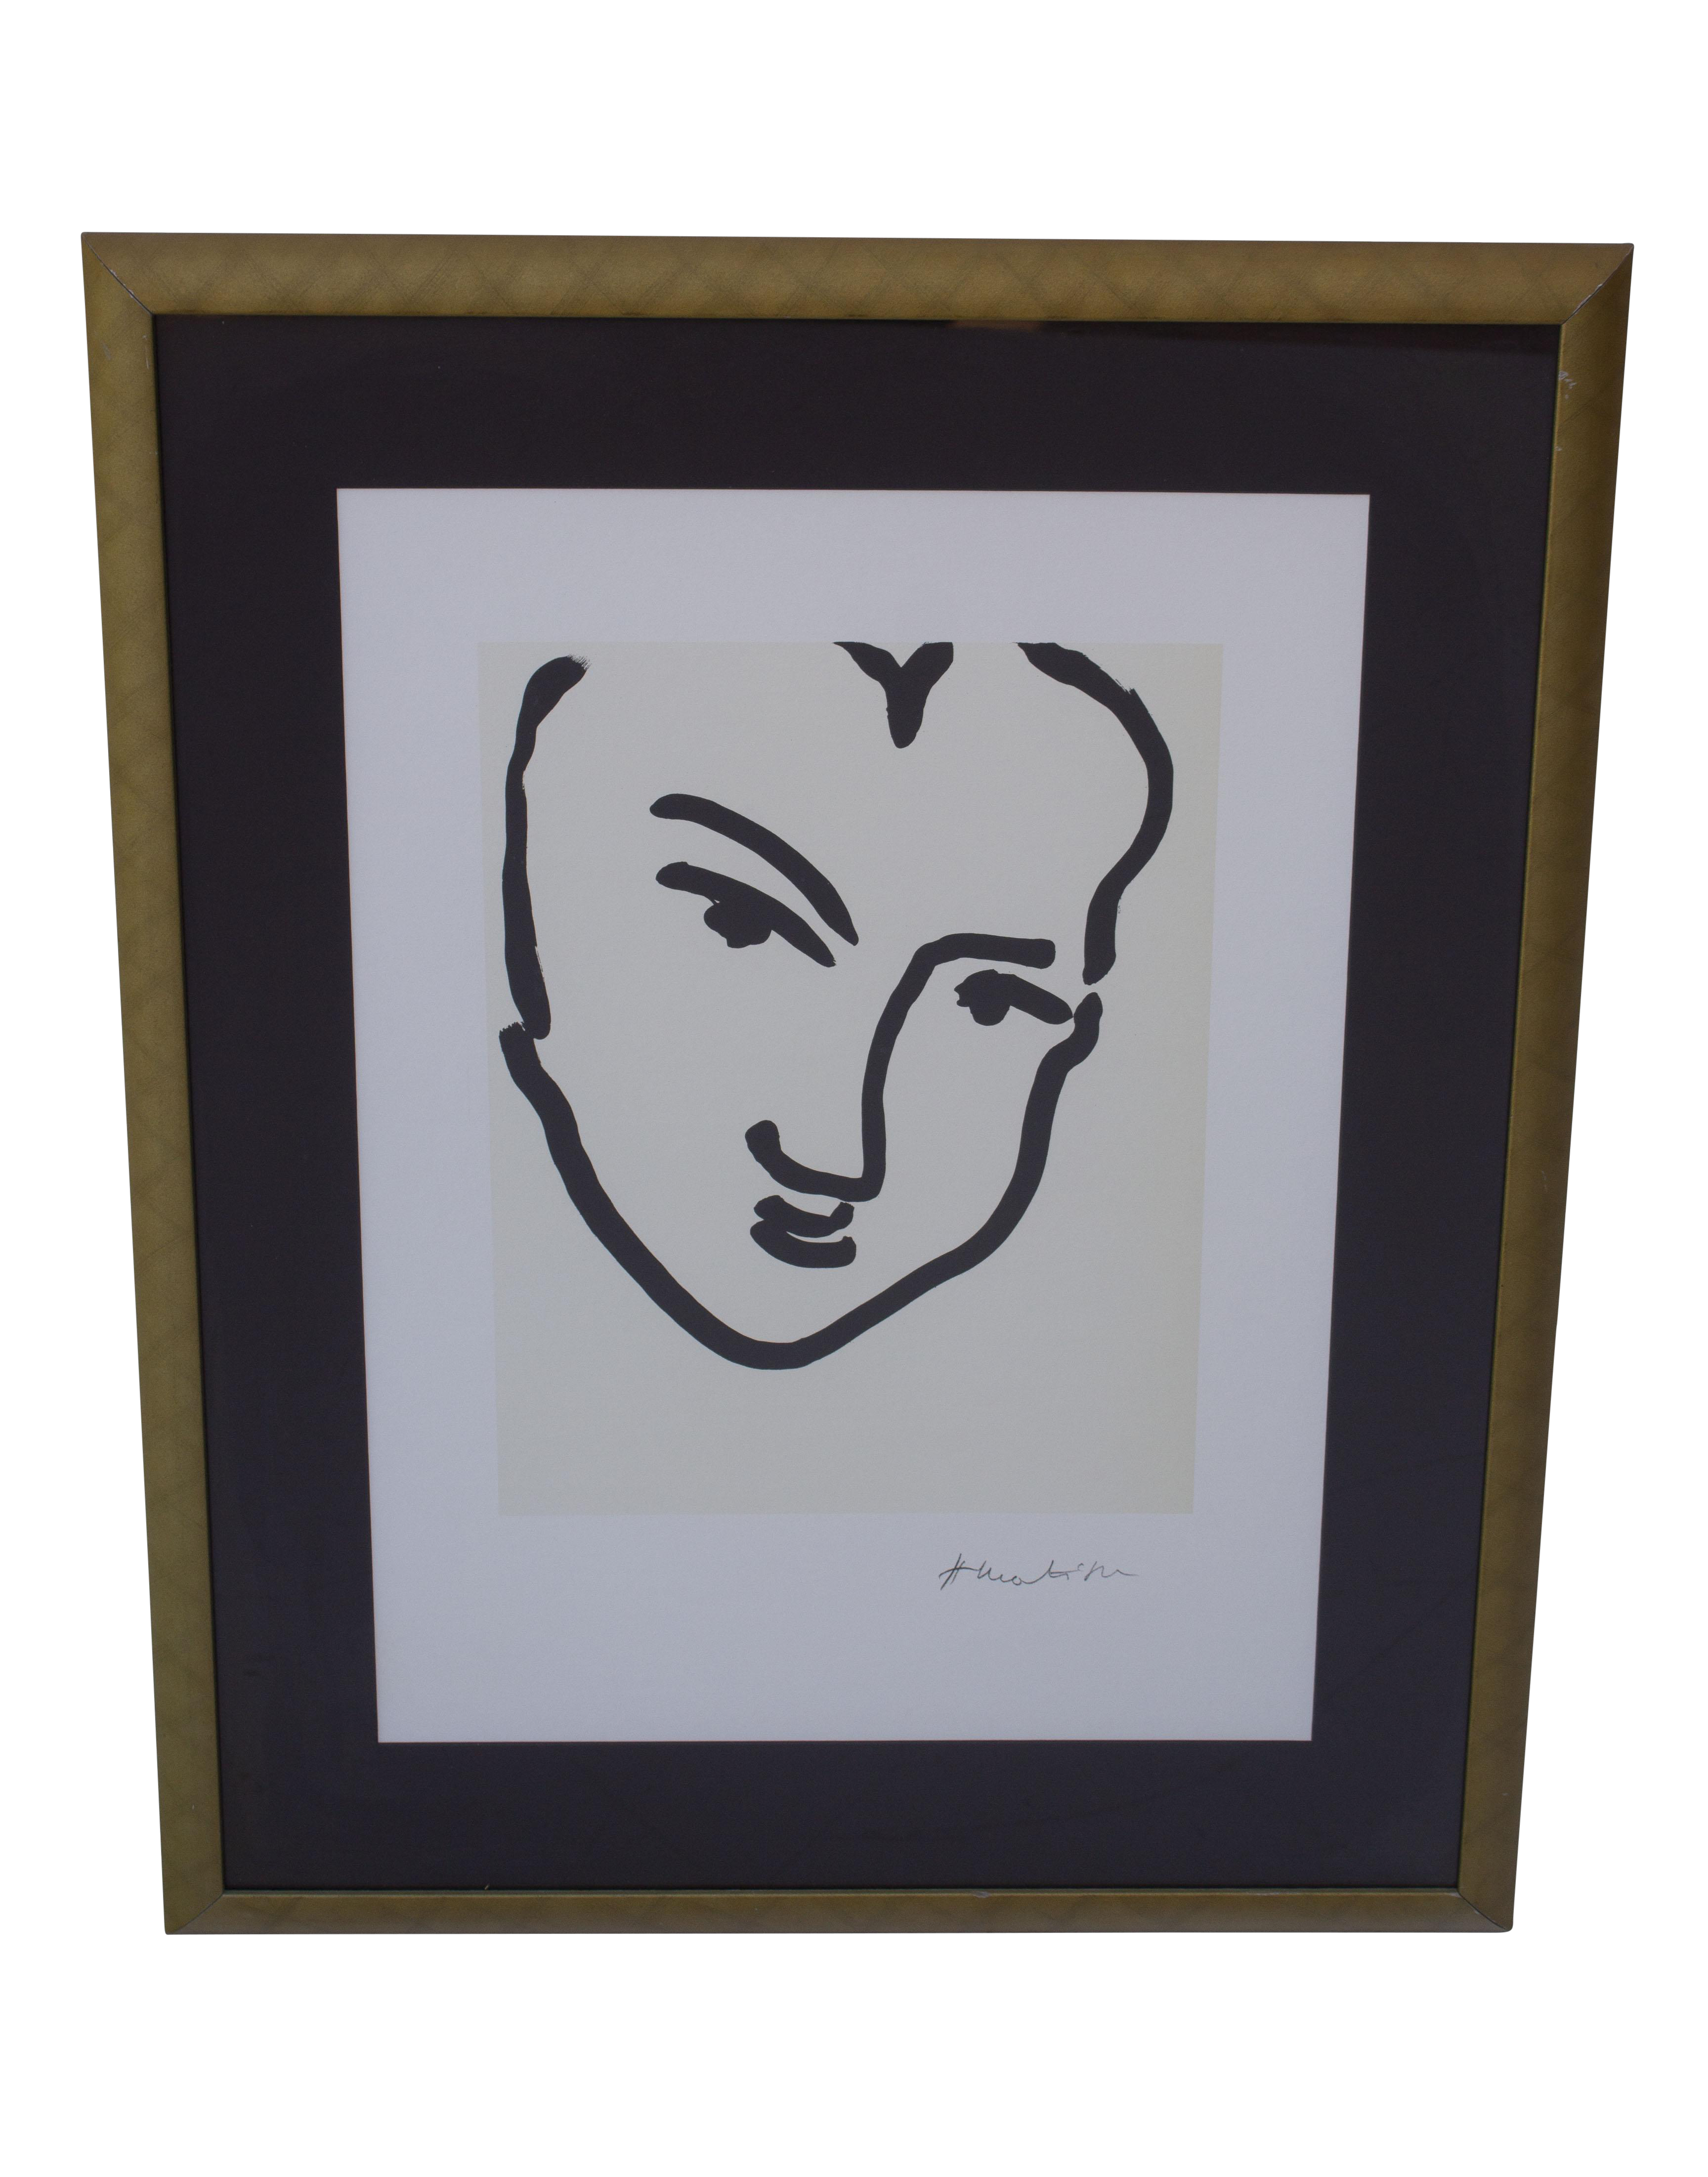 vector free library Drawing prints matisse. Framed black and white